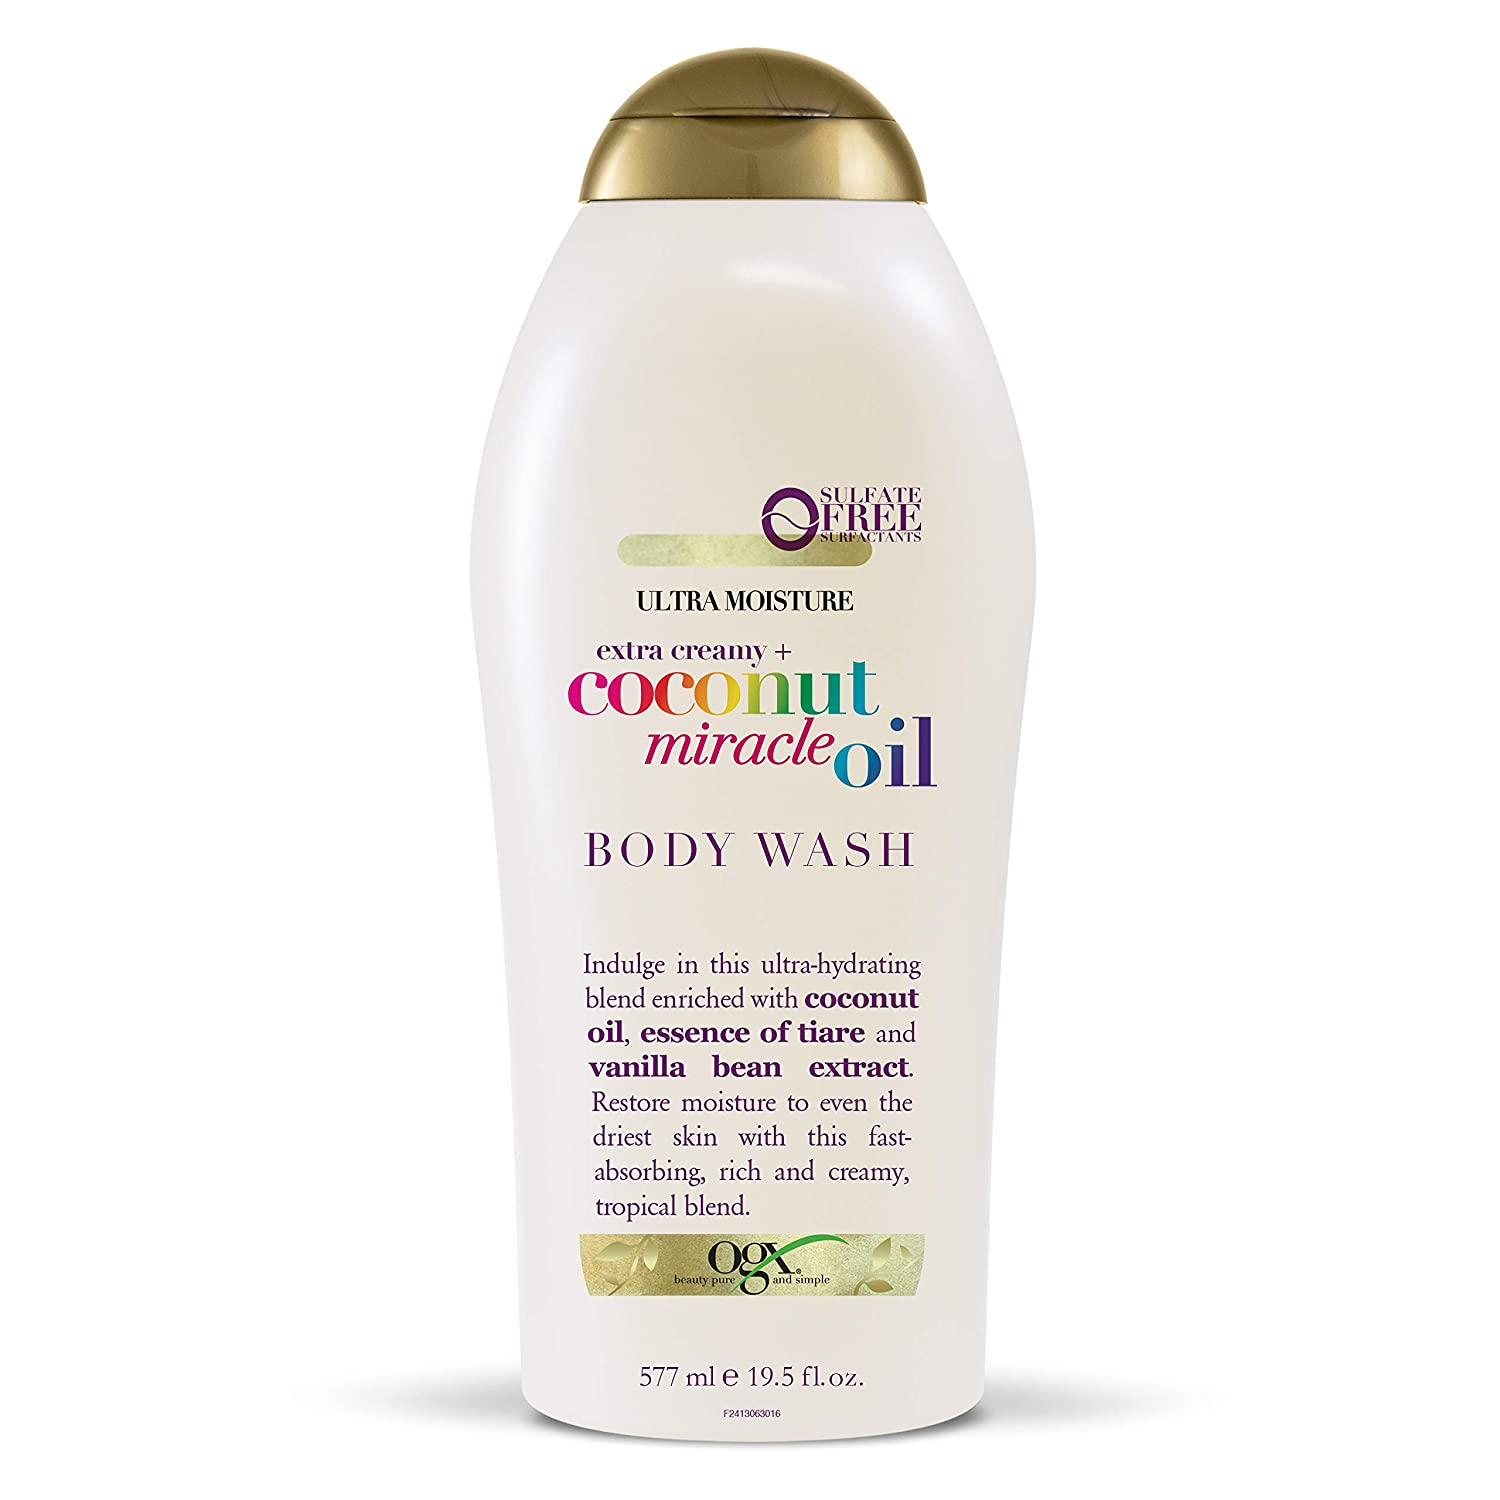 OGX Extra Creamy + Coconut Miracle Oil Ultra Moisture Body Wash, 19.5 Ounce : Beauty